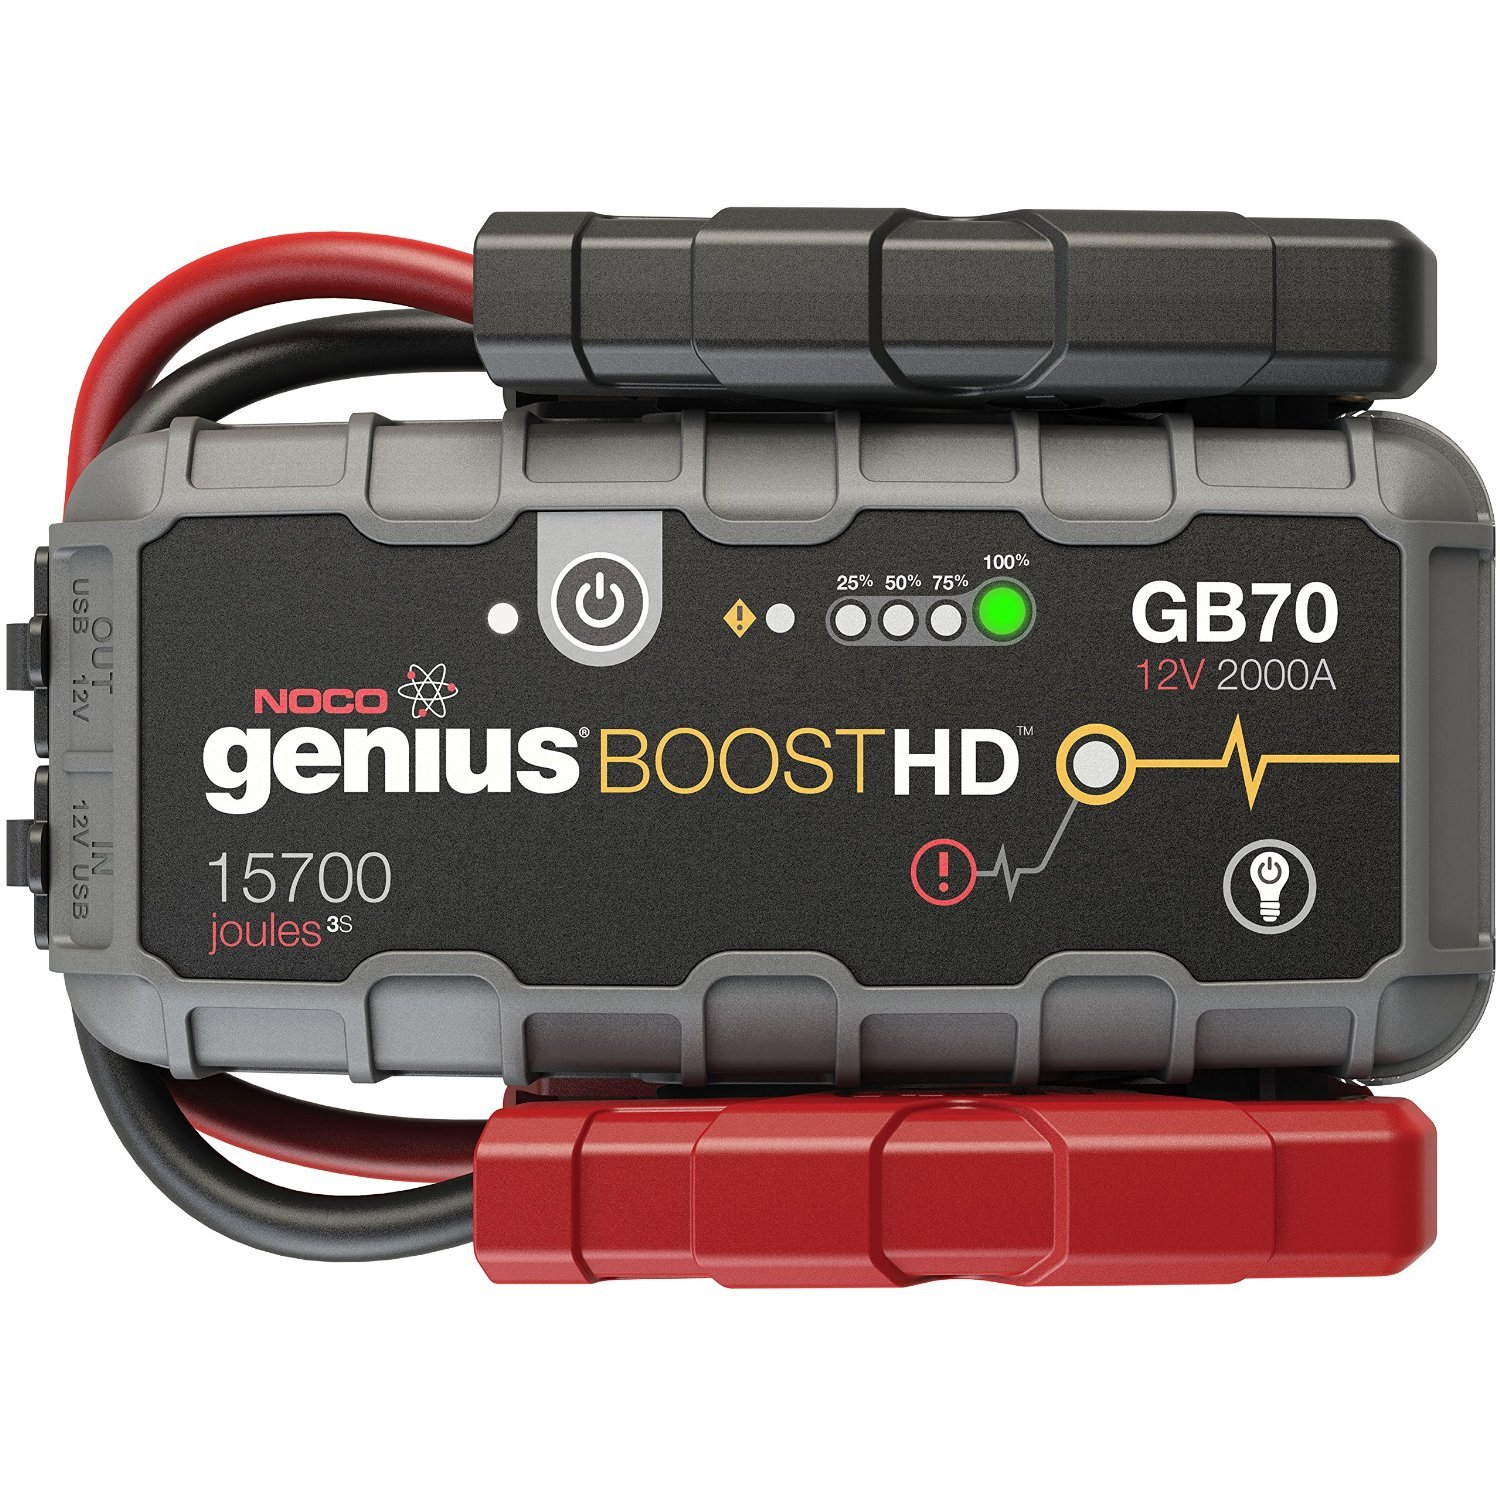 GB70 NOCO Boost HD 2000 Amp UltraSafe Lithium Jump Starter for 8L Gasoline and 6L Diesel Engines Extended Warranty